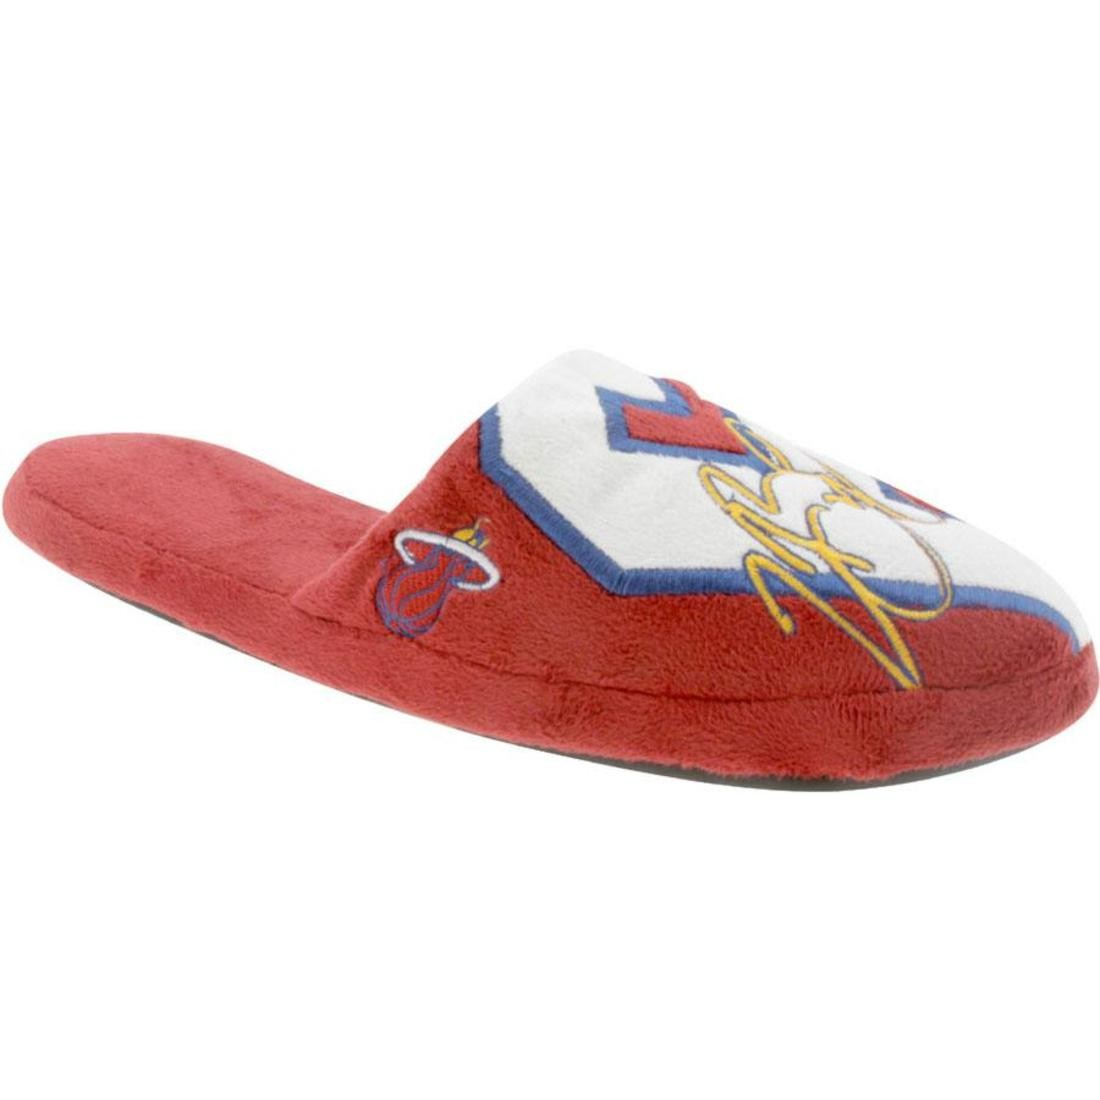 Forever Collectibles Slide Slipper - Lebron James Miami Heat (red / white / blue)